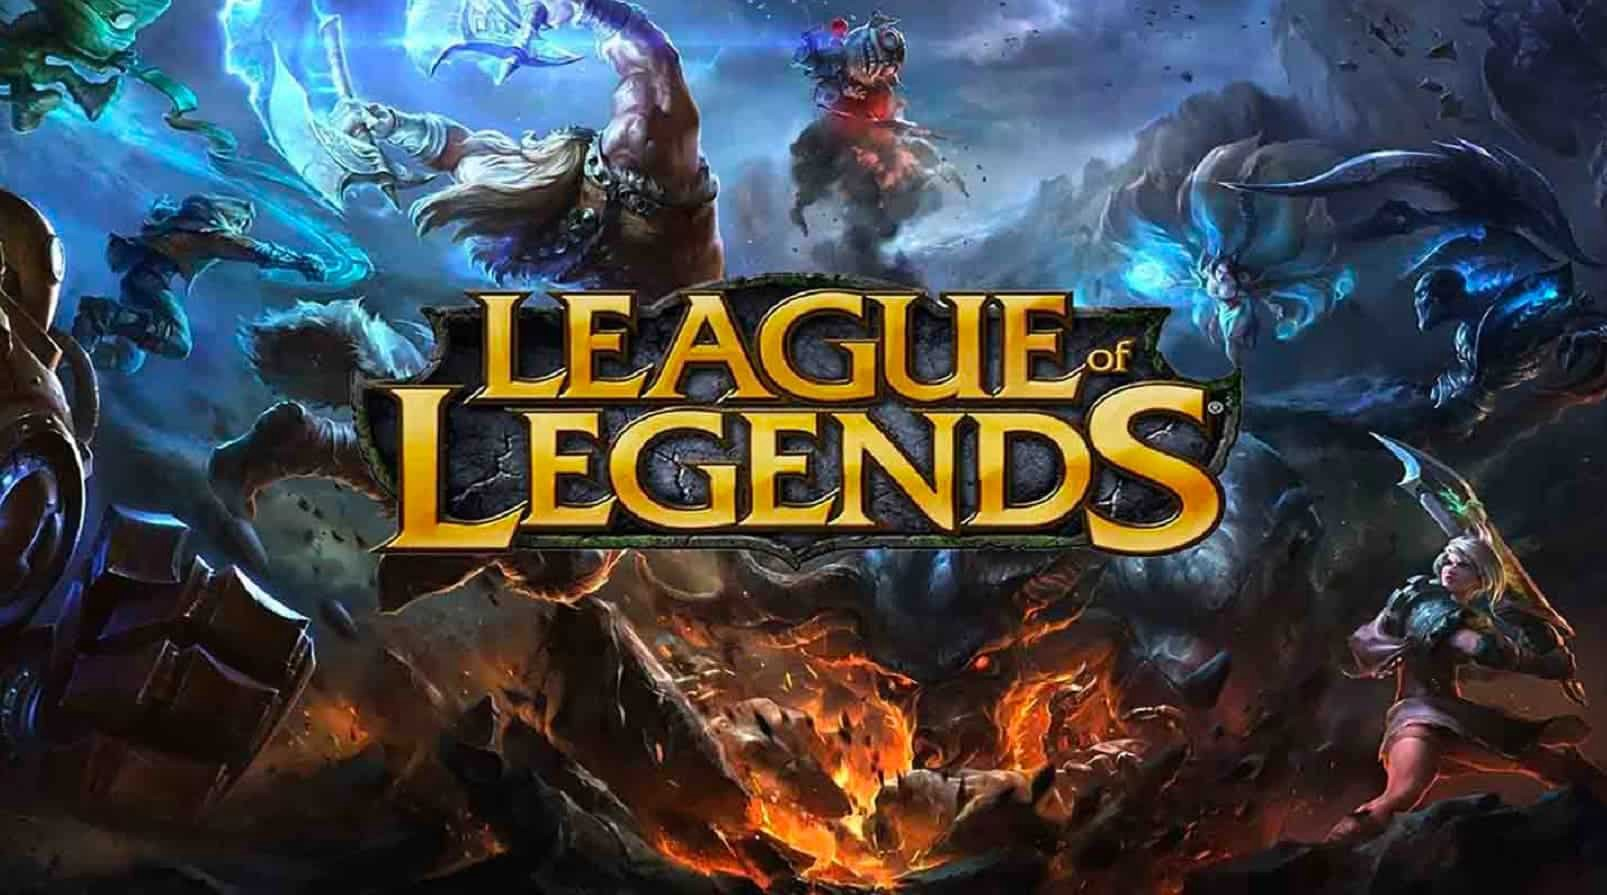 League of Legends developed by Riot